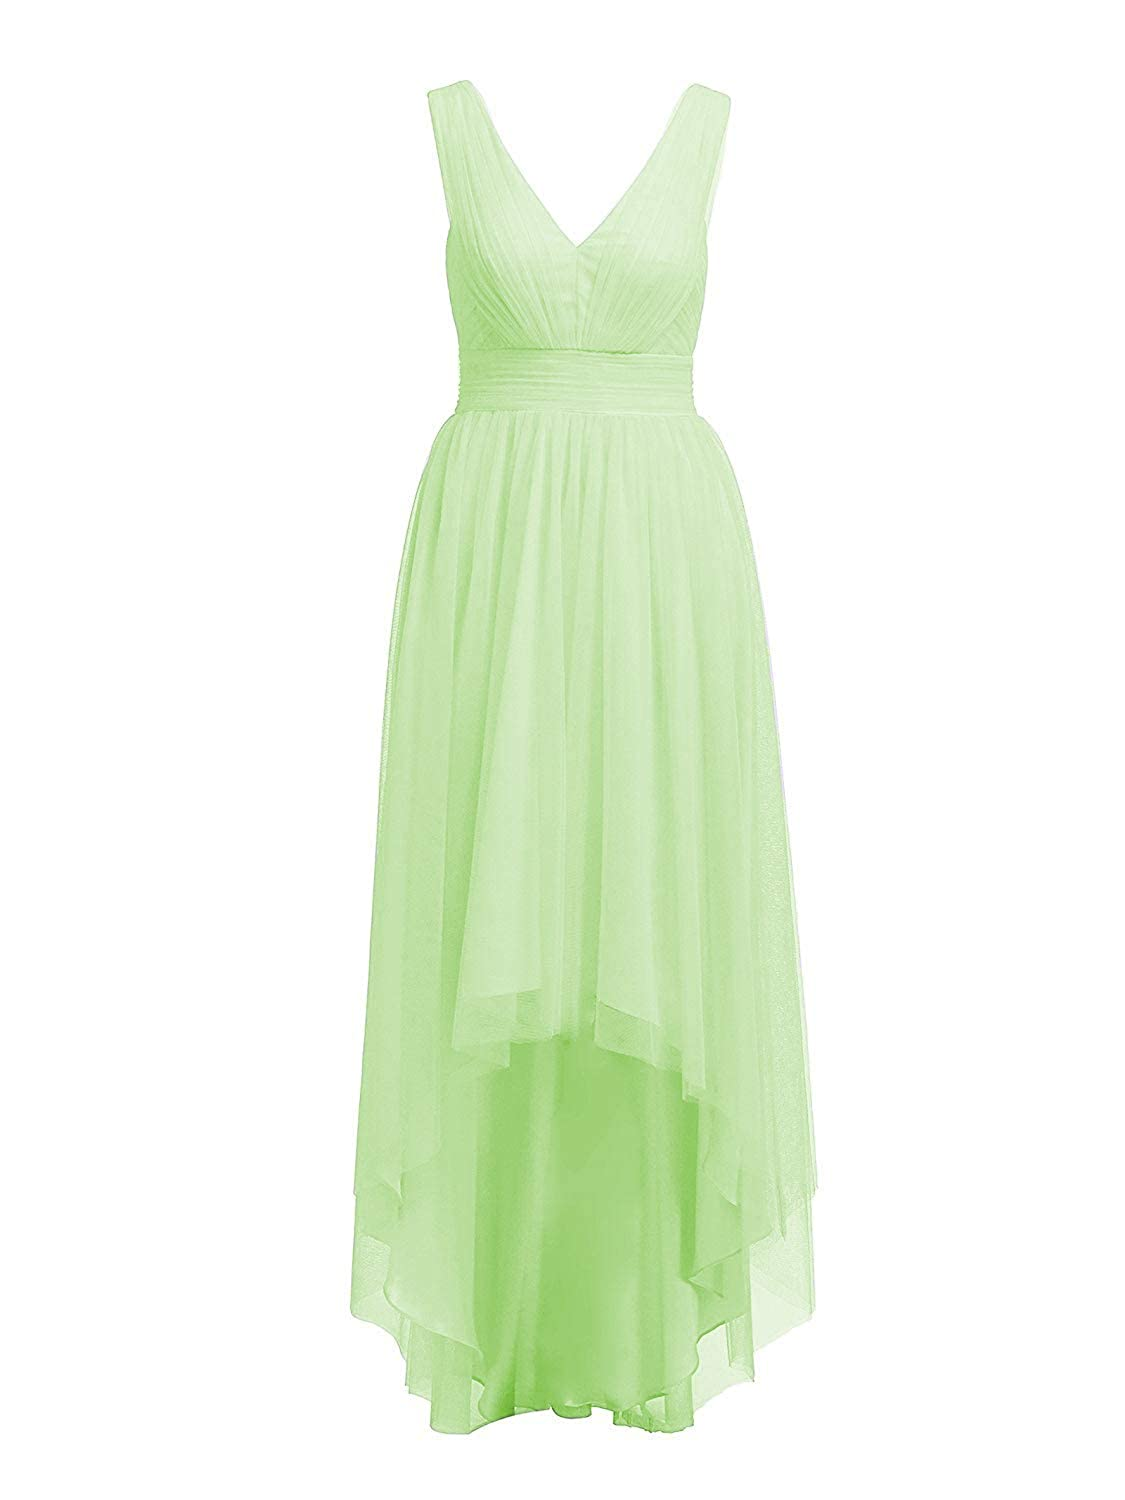 Sage Cdress High Low Bridesmaid Dresses Tulle HiLo Prom Party Dress VNeck Evening Formal Gowns